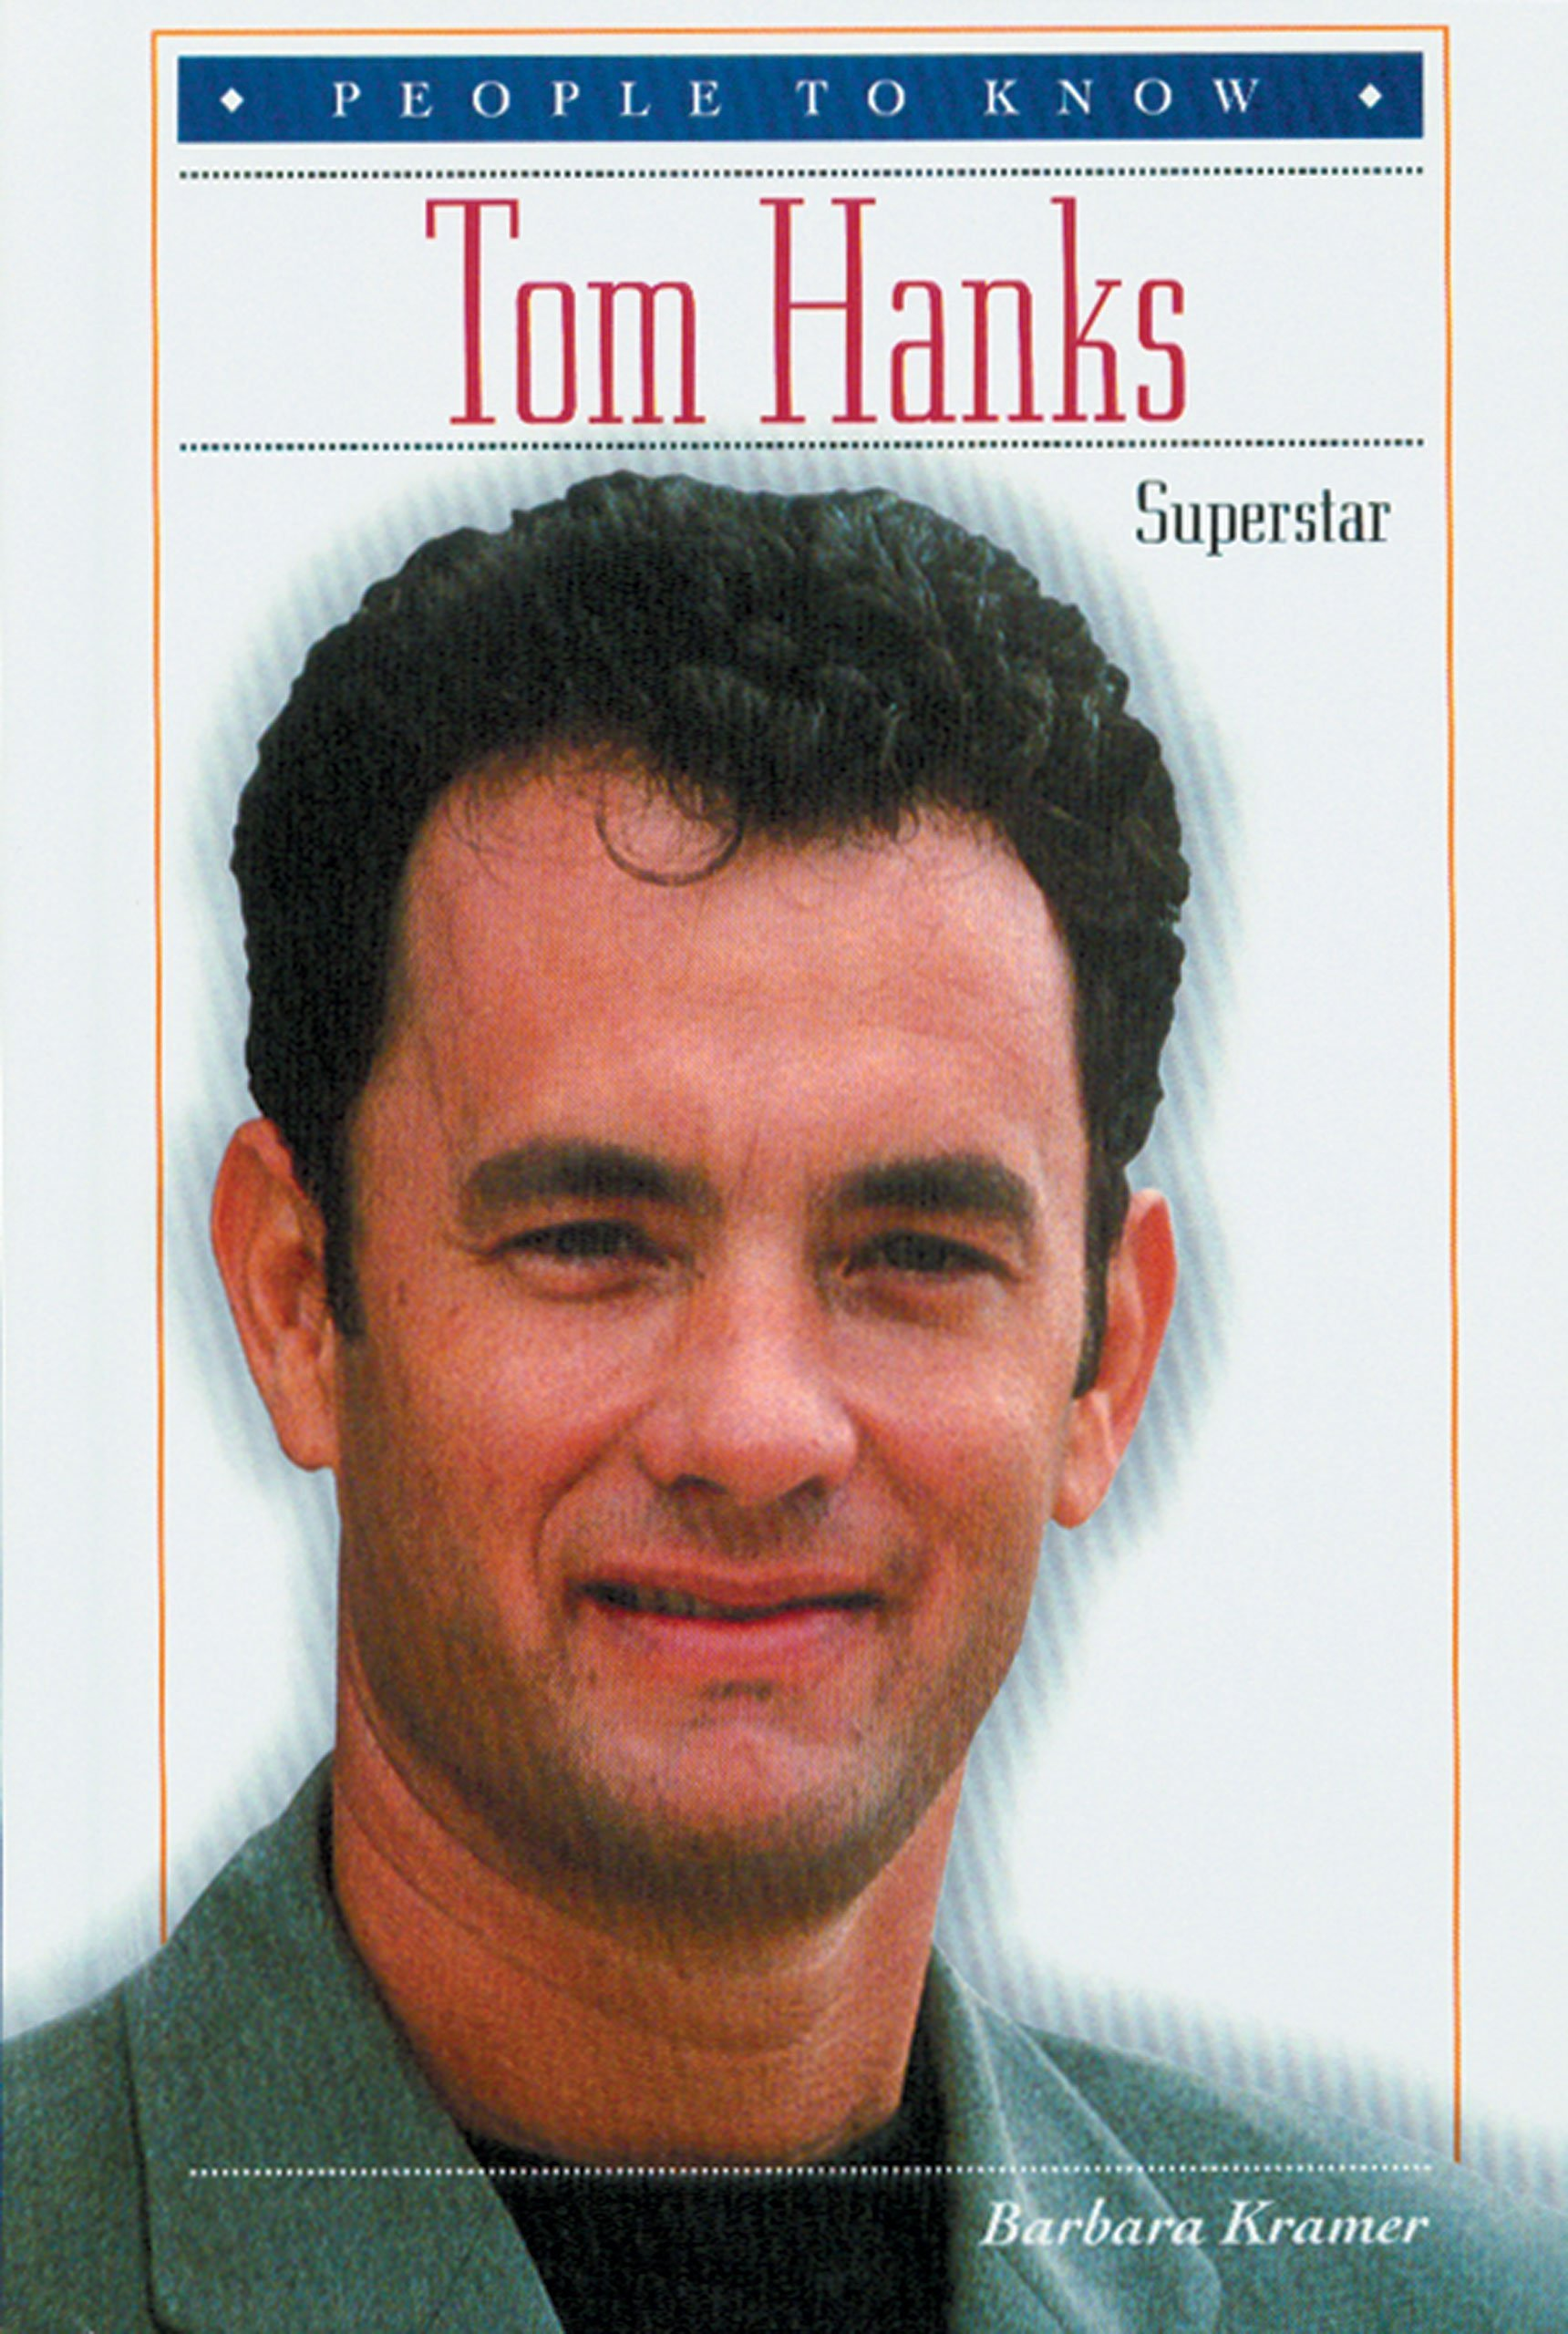 Read Online Tom Hanks: Superstar (People to Know) pdf epub